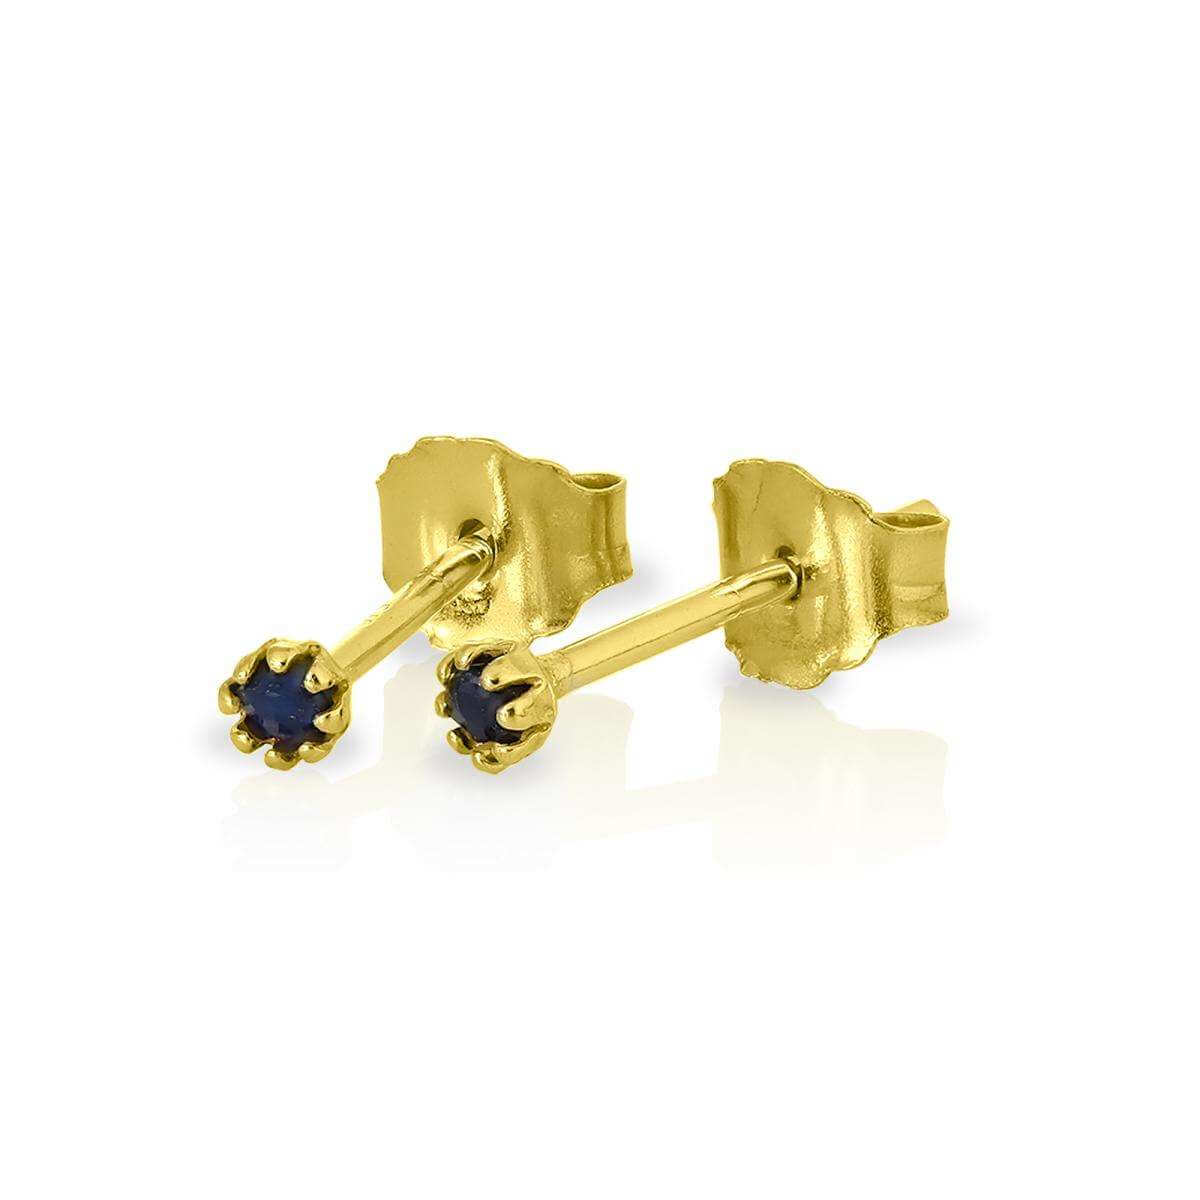 9ct Gold & Sapphire Gemstone 2mm Round Stud Earrings